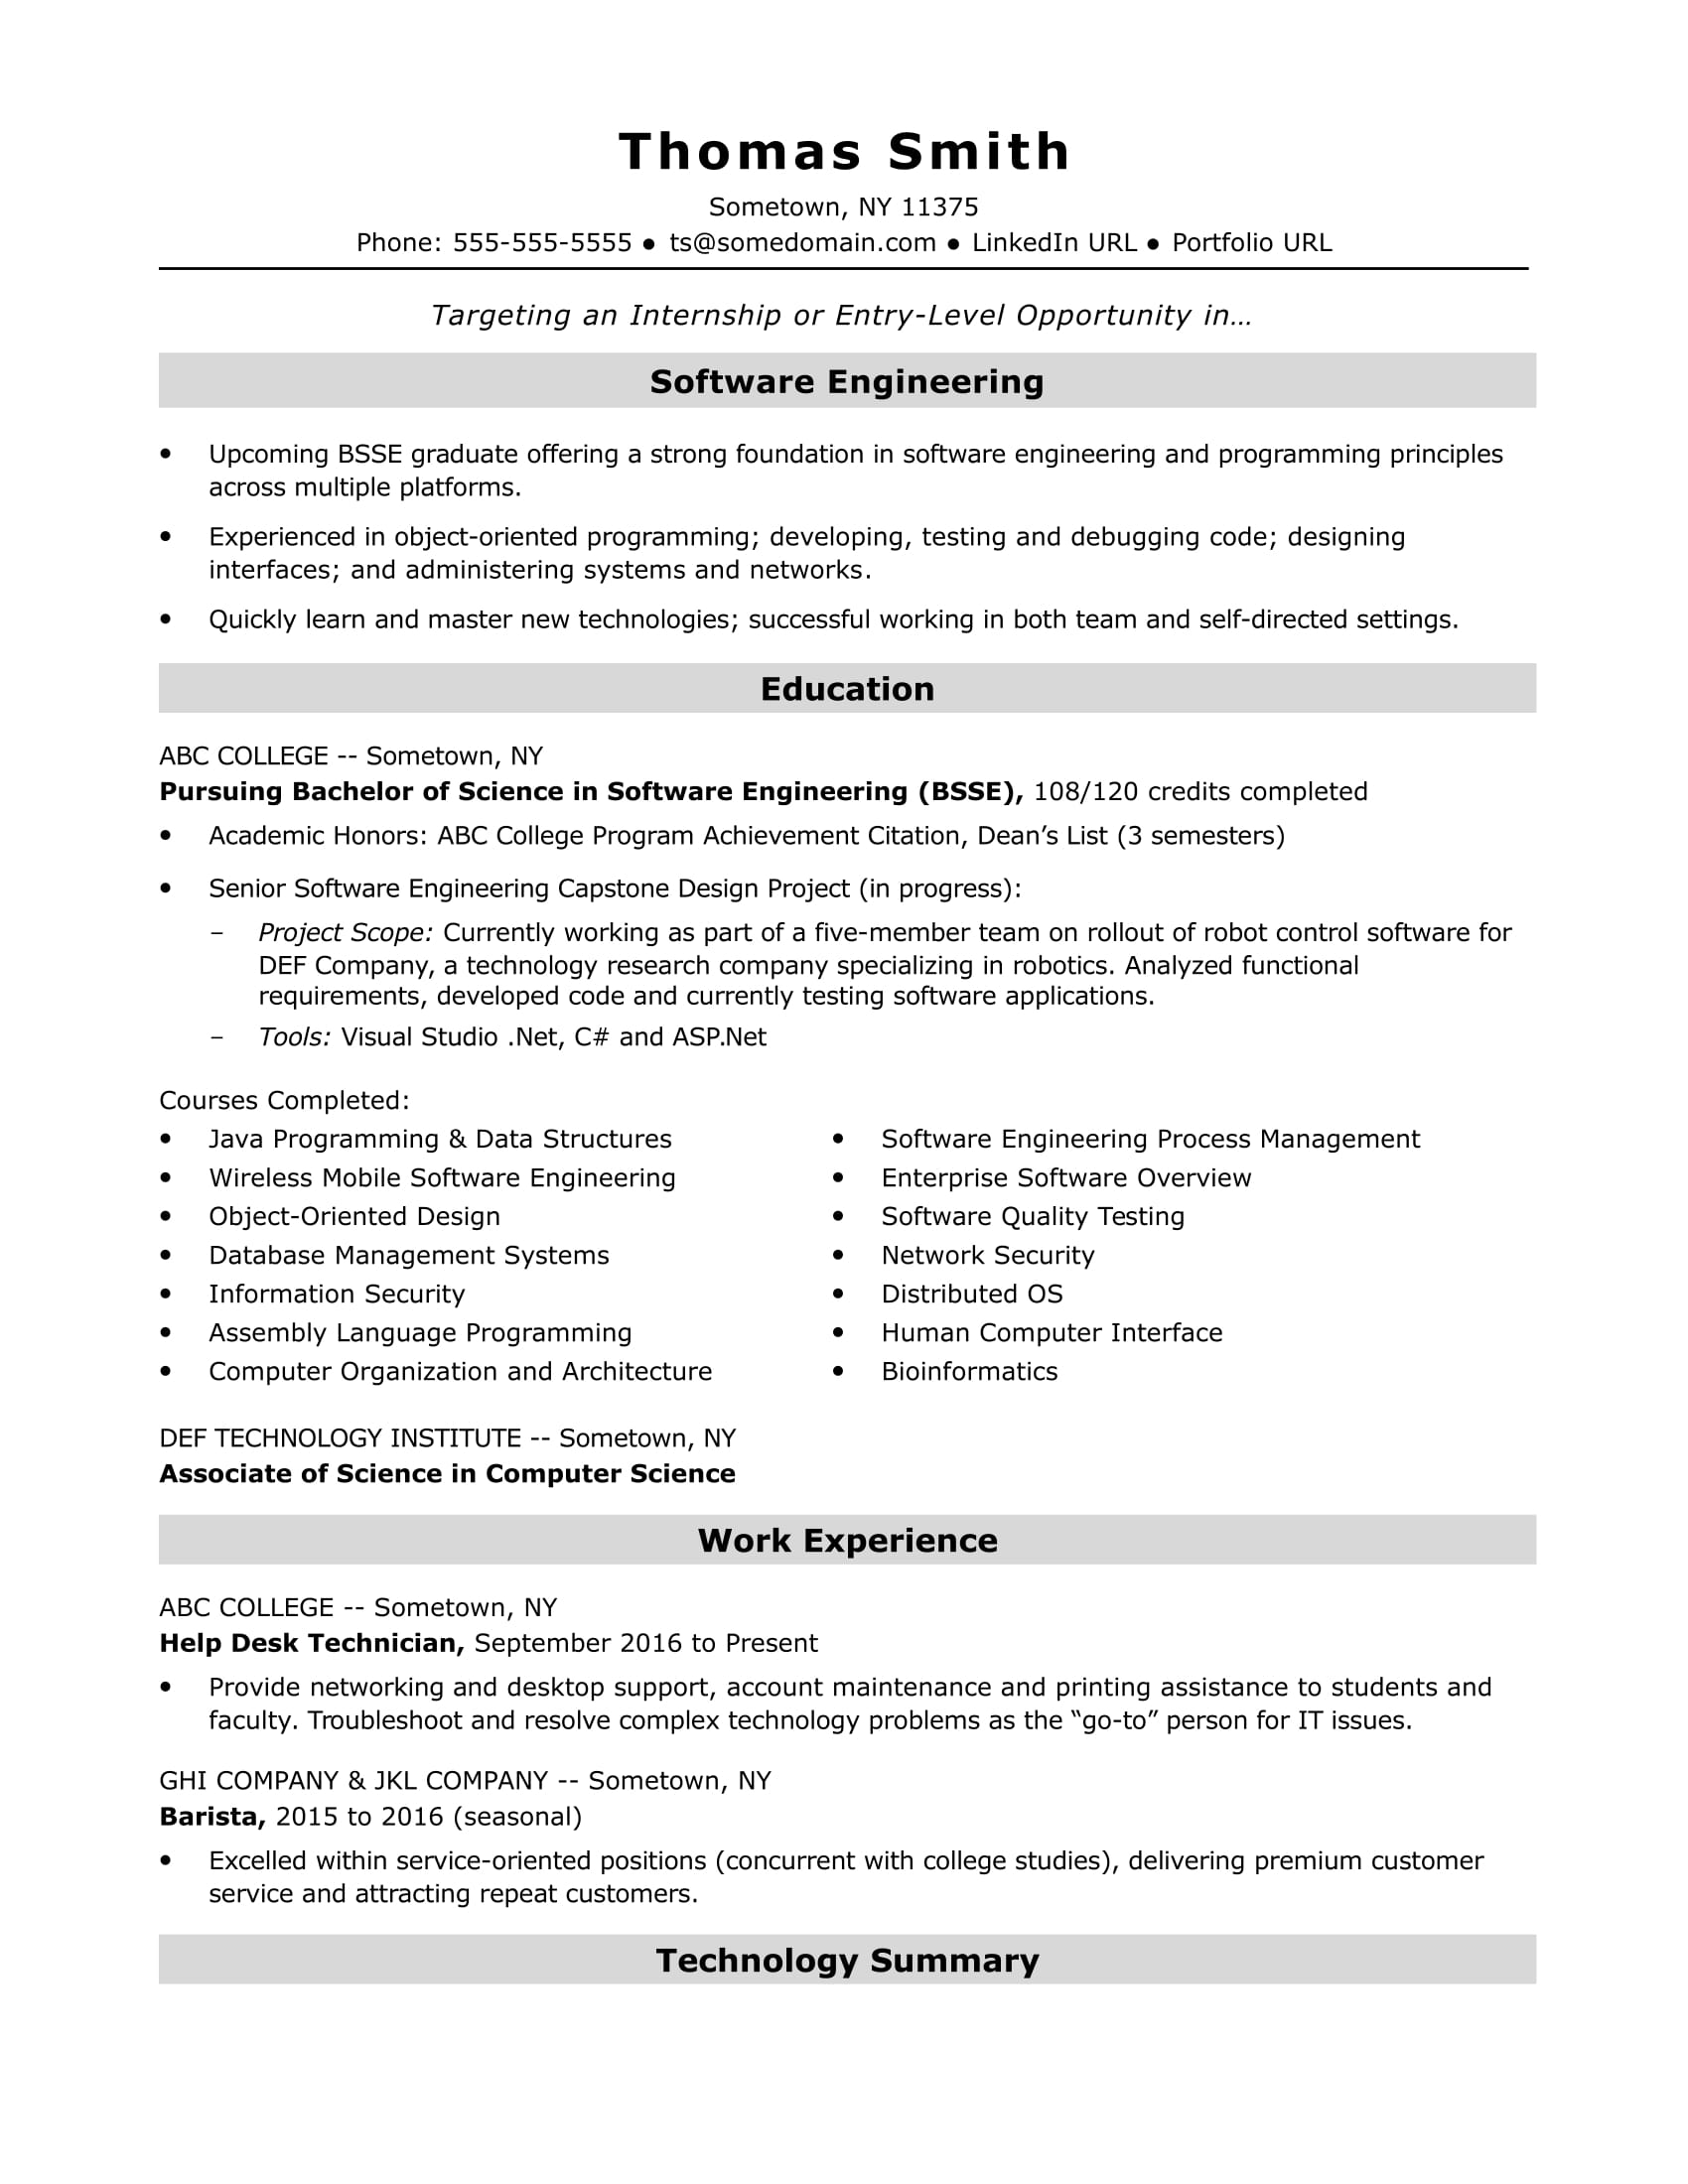 resume Engineer Resume Template entry level software engineer resume sample monster com for an engineer